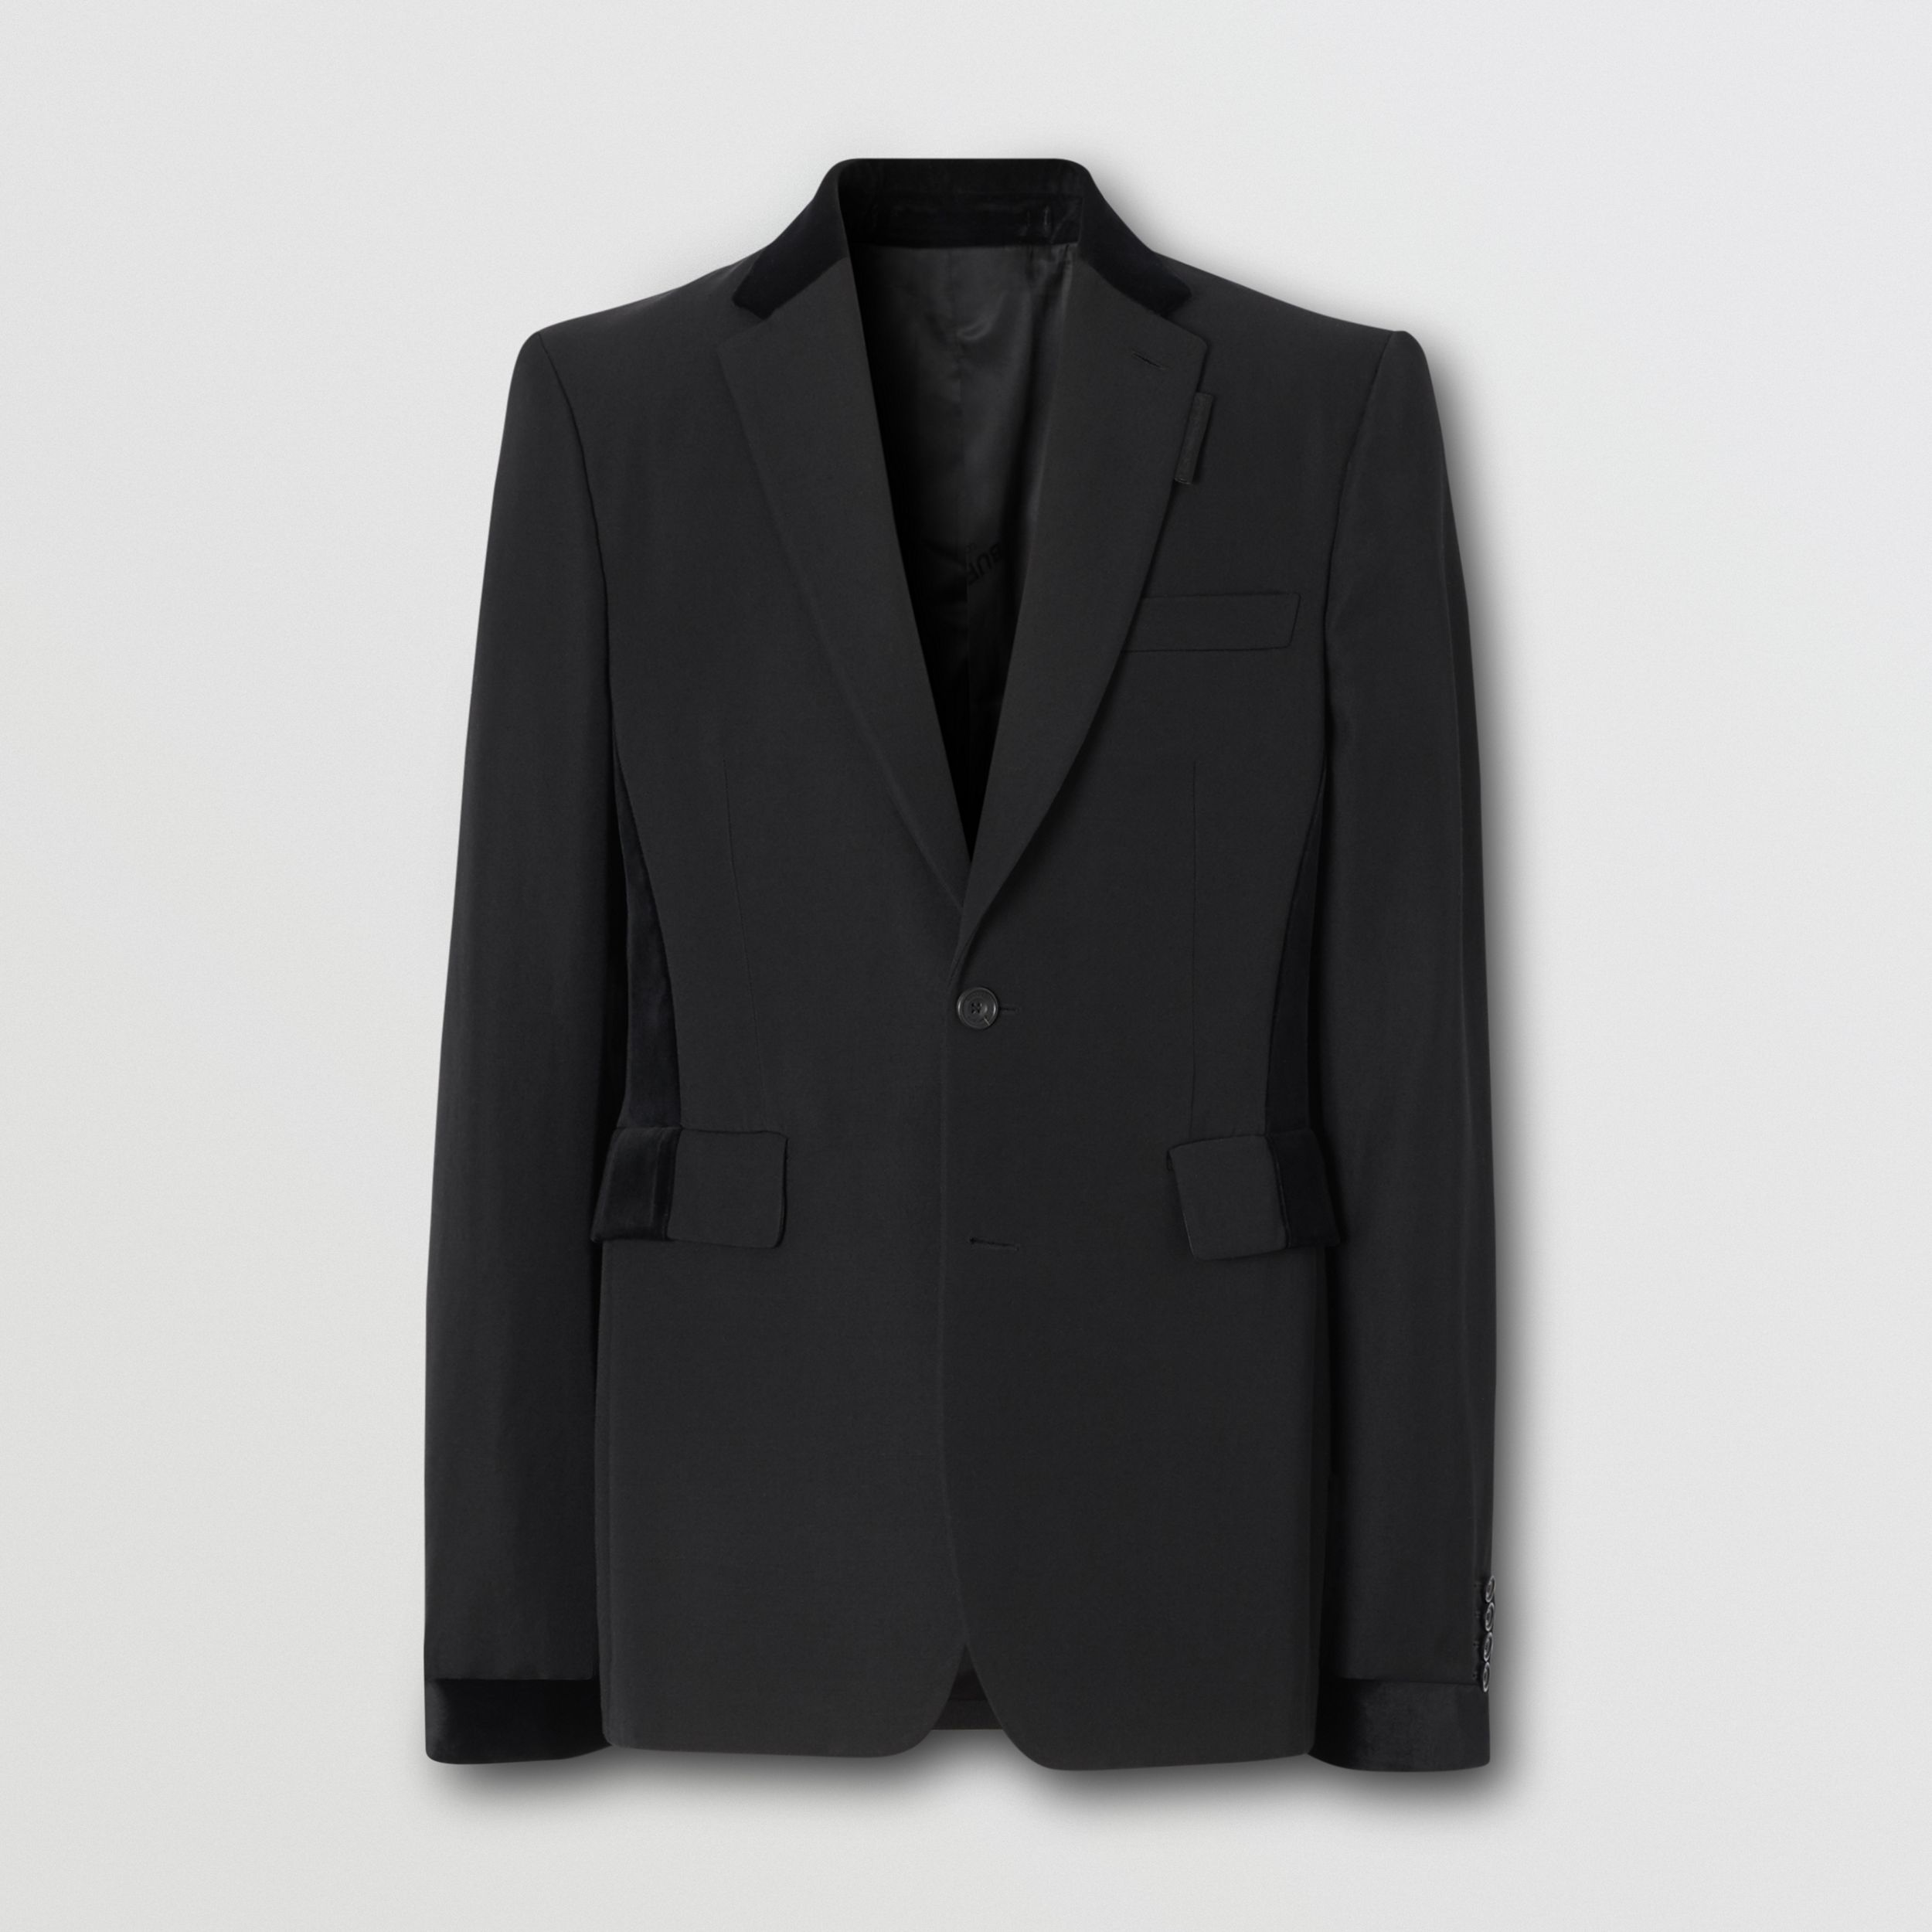 Classic Fit Velvet Trim Wool Tailored Jacket in Black - Men | Burberry - 4